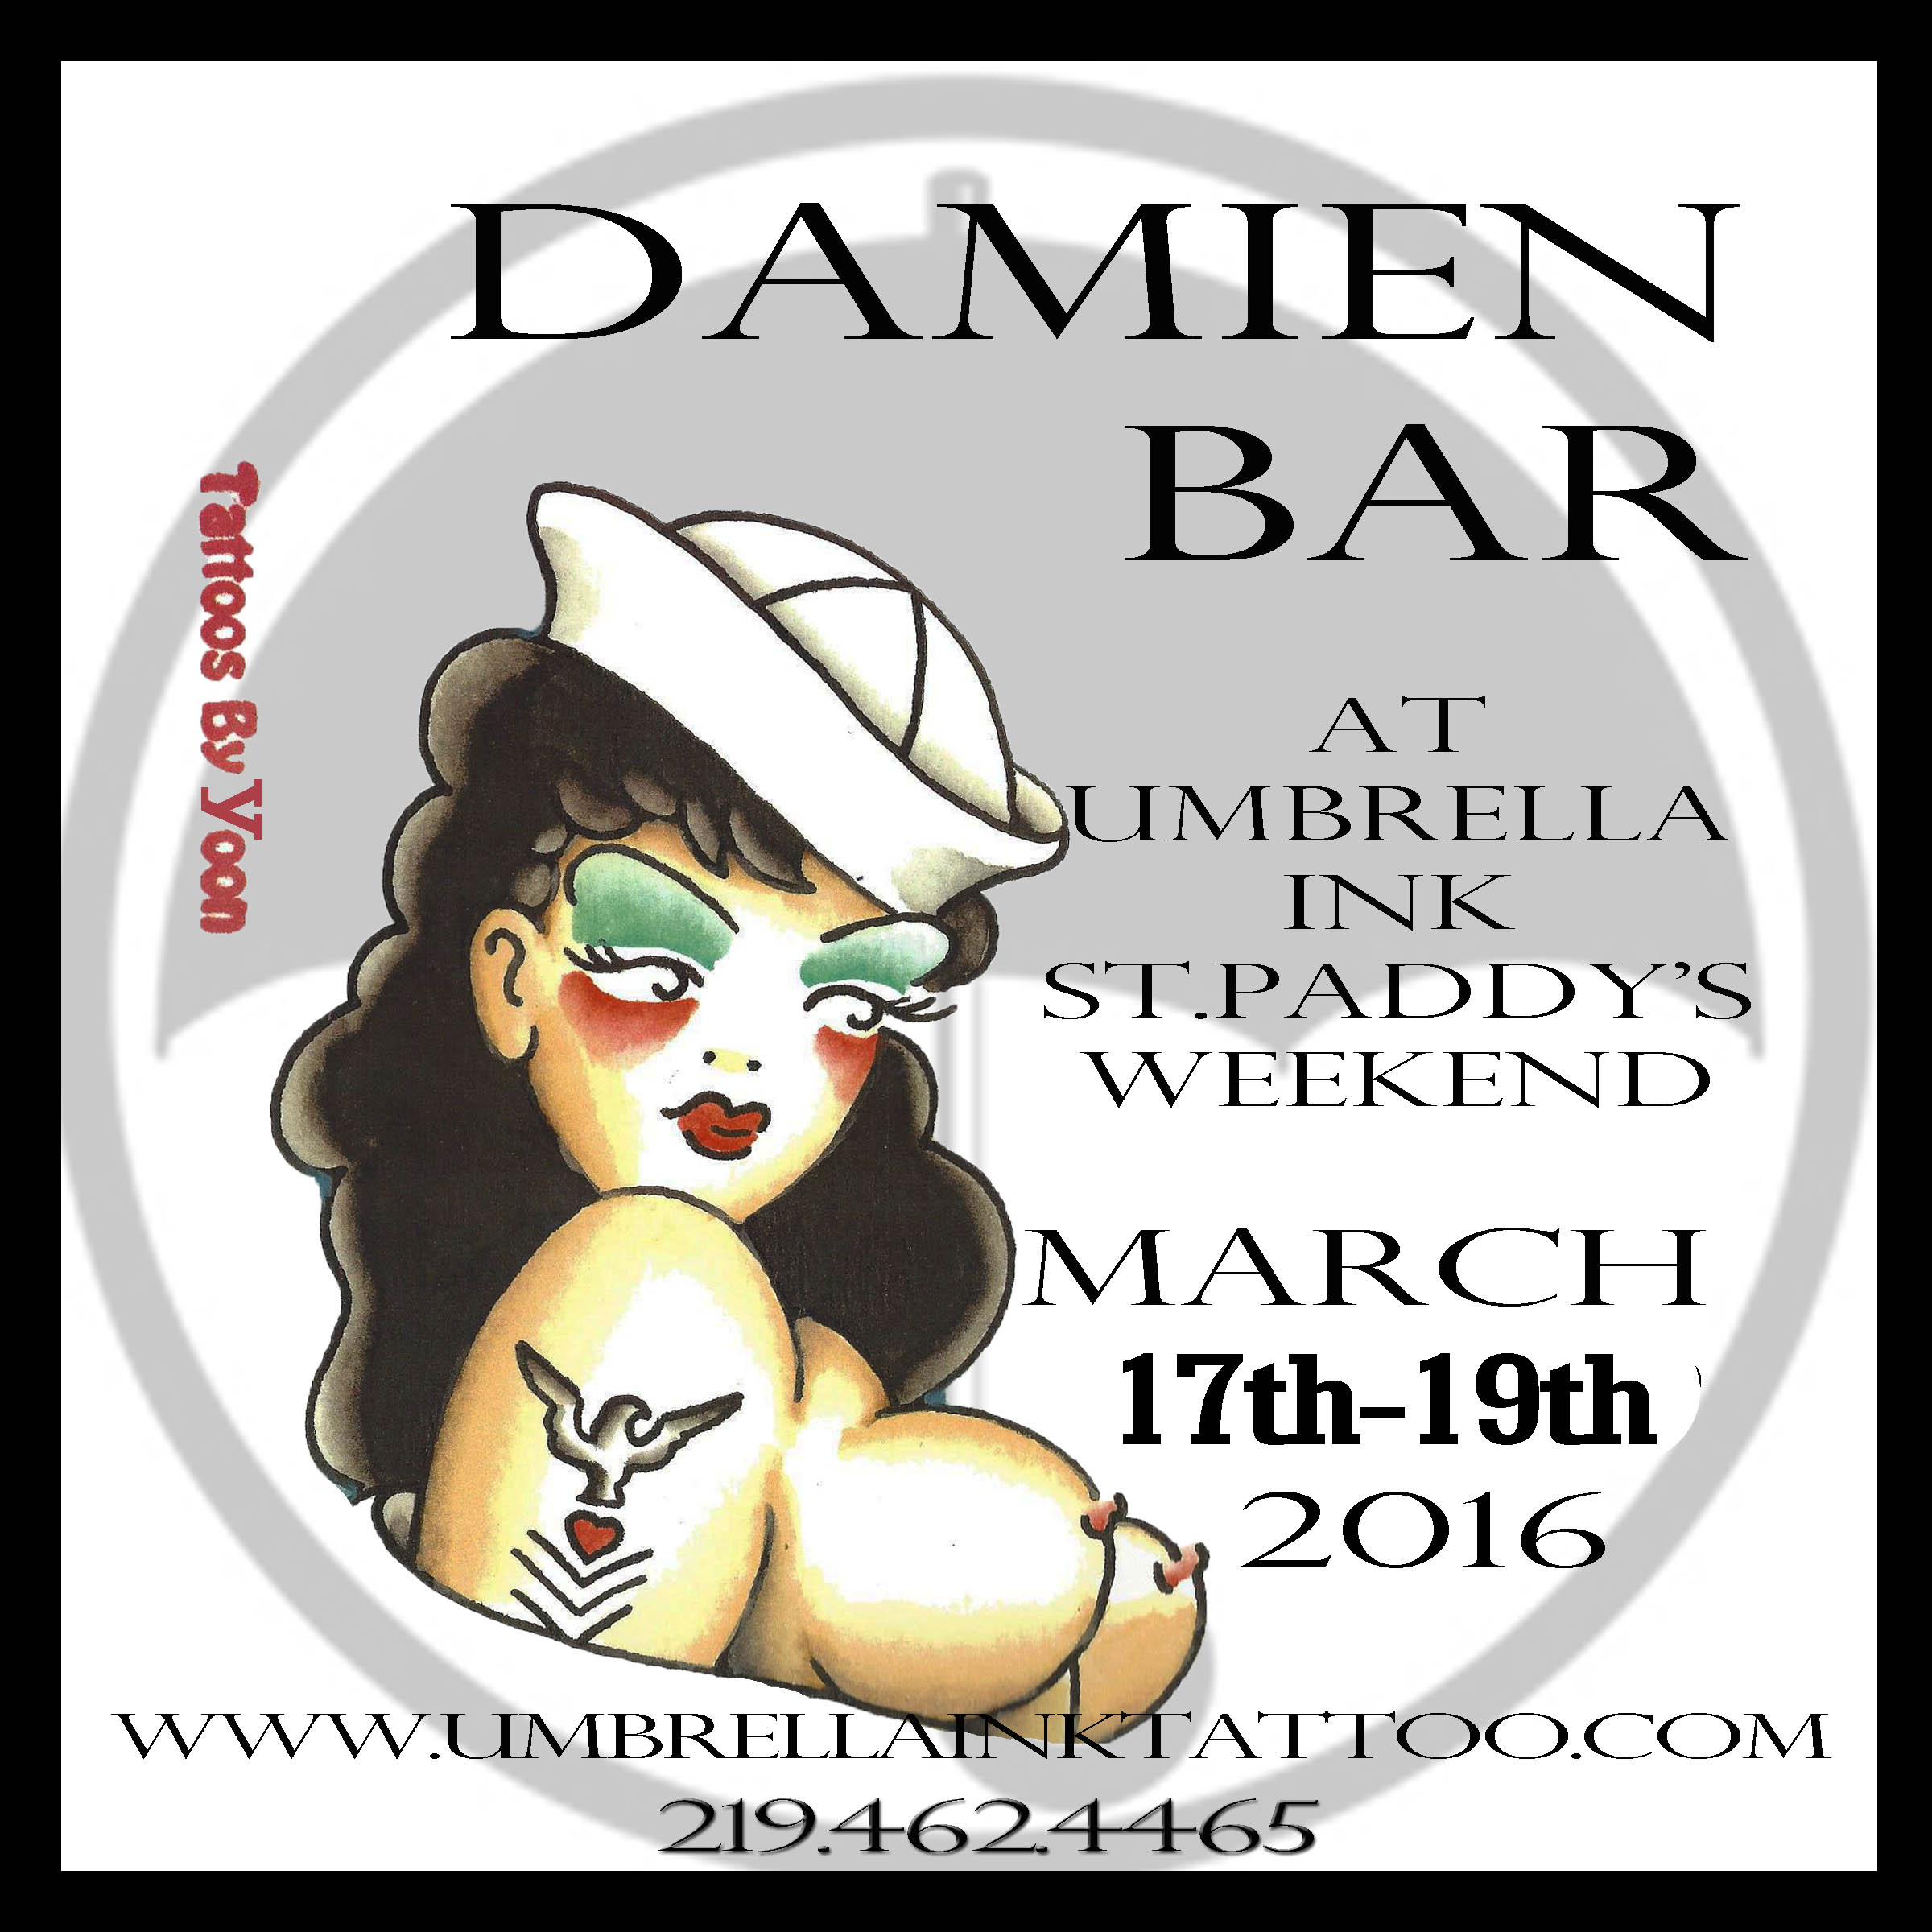 Celebrate St.Patrick's Weekend under the Umbrella with Damien Bar (YOON)